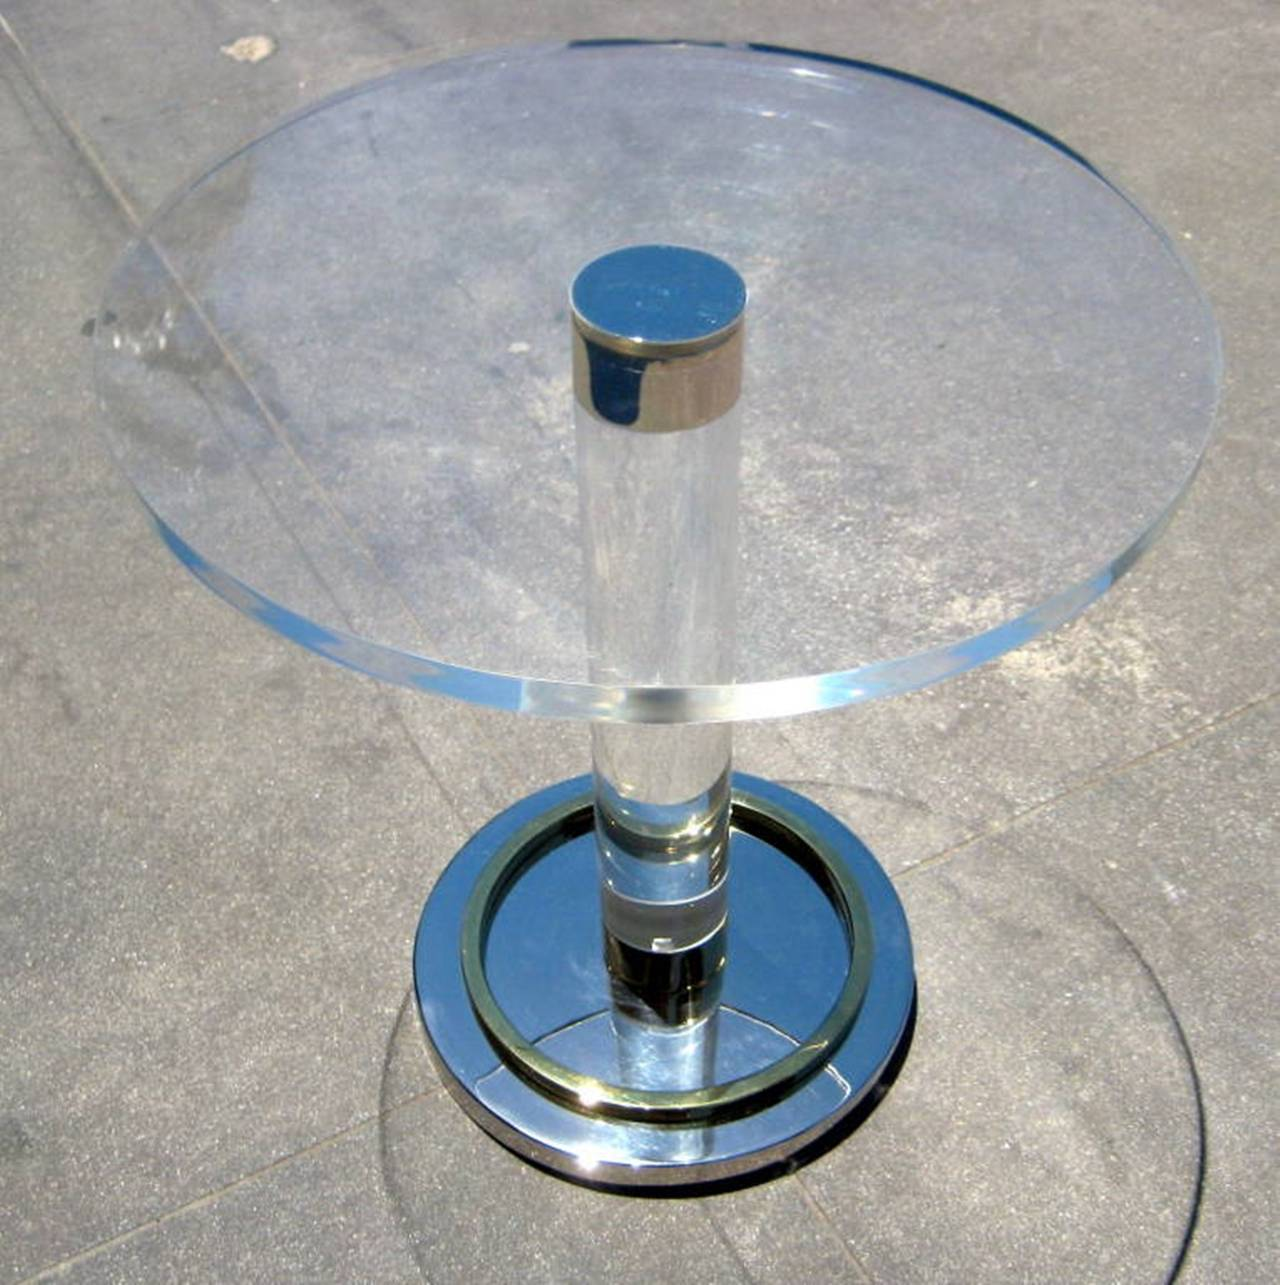 Stunning side table in Lucite, brass and polished nickel. The table is a vintage piece designed in the 1960s and in excellent condition, the top is new and in mint condition.  The table is signed and dated by the artist. Measurements: 19